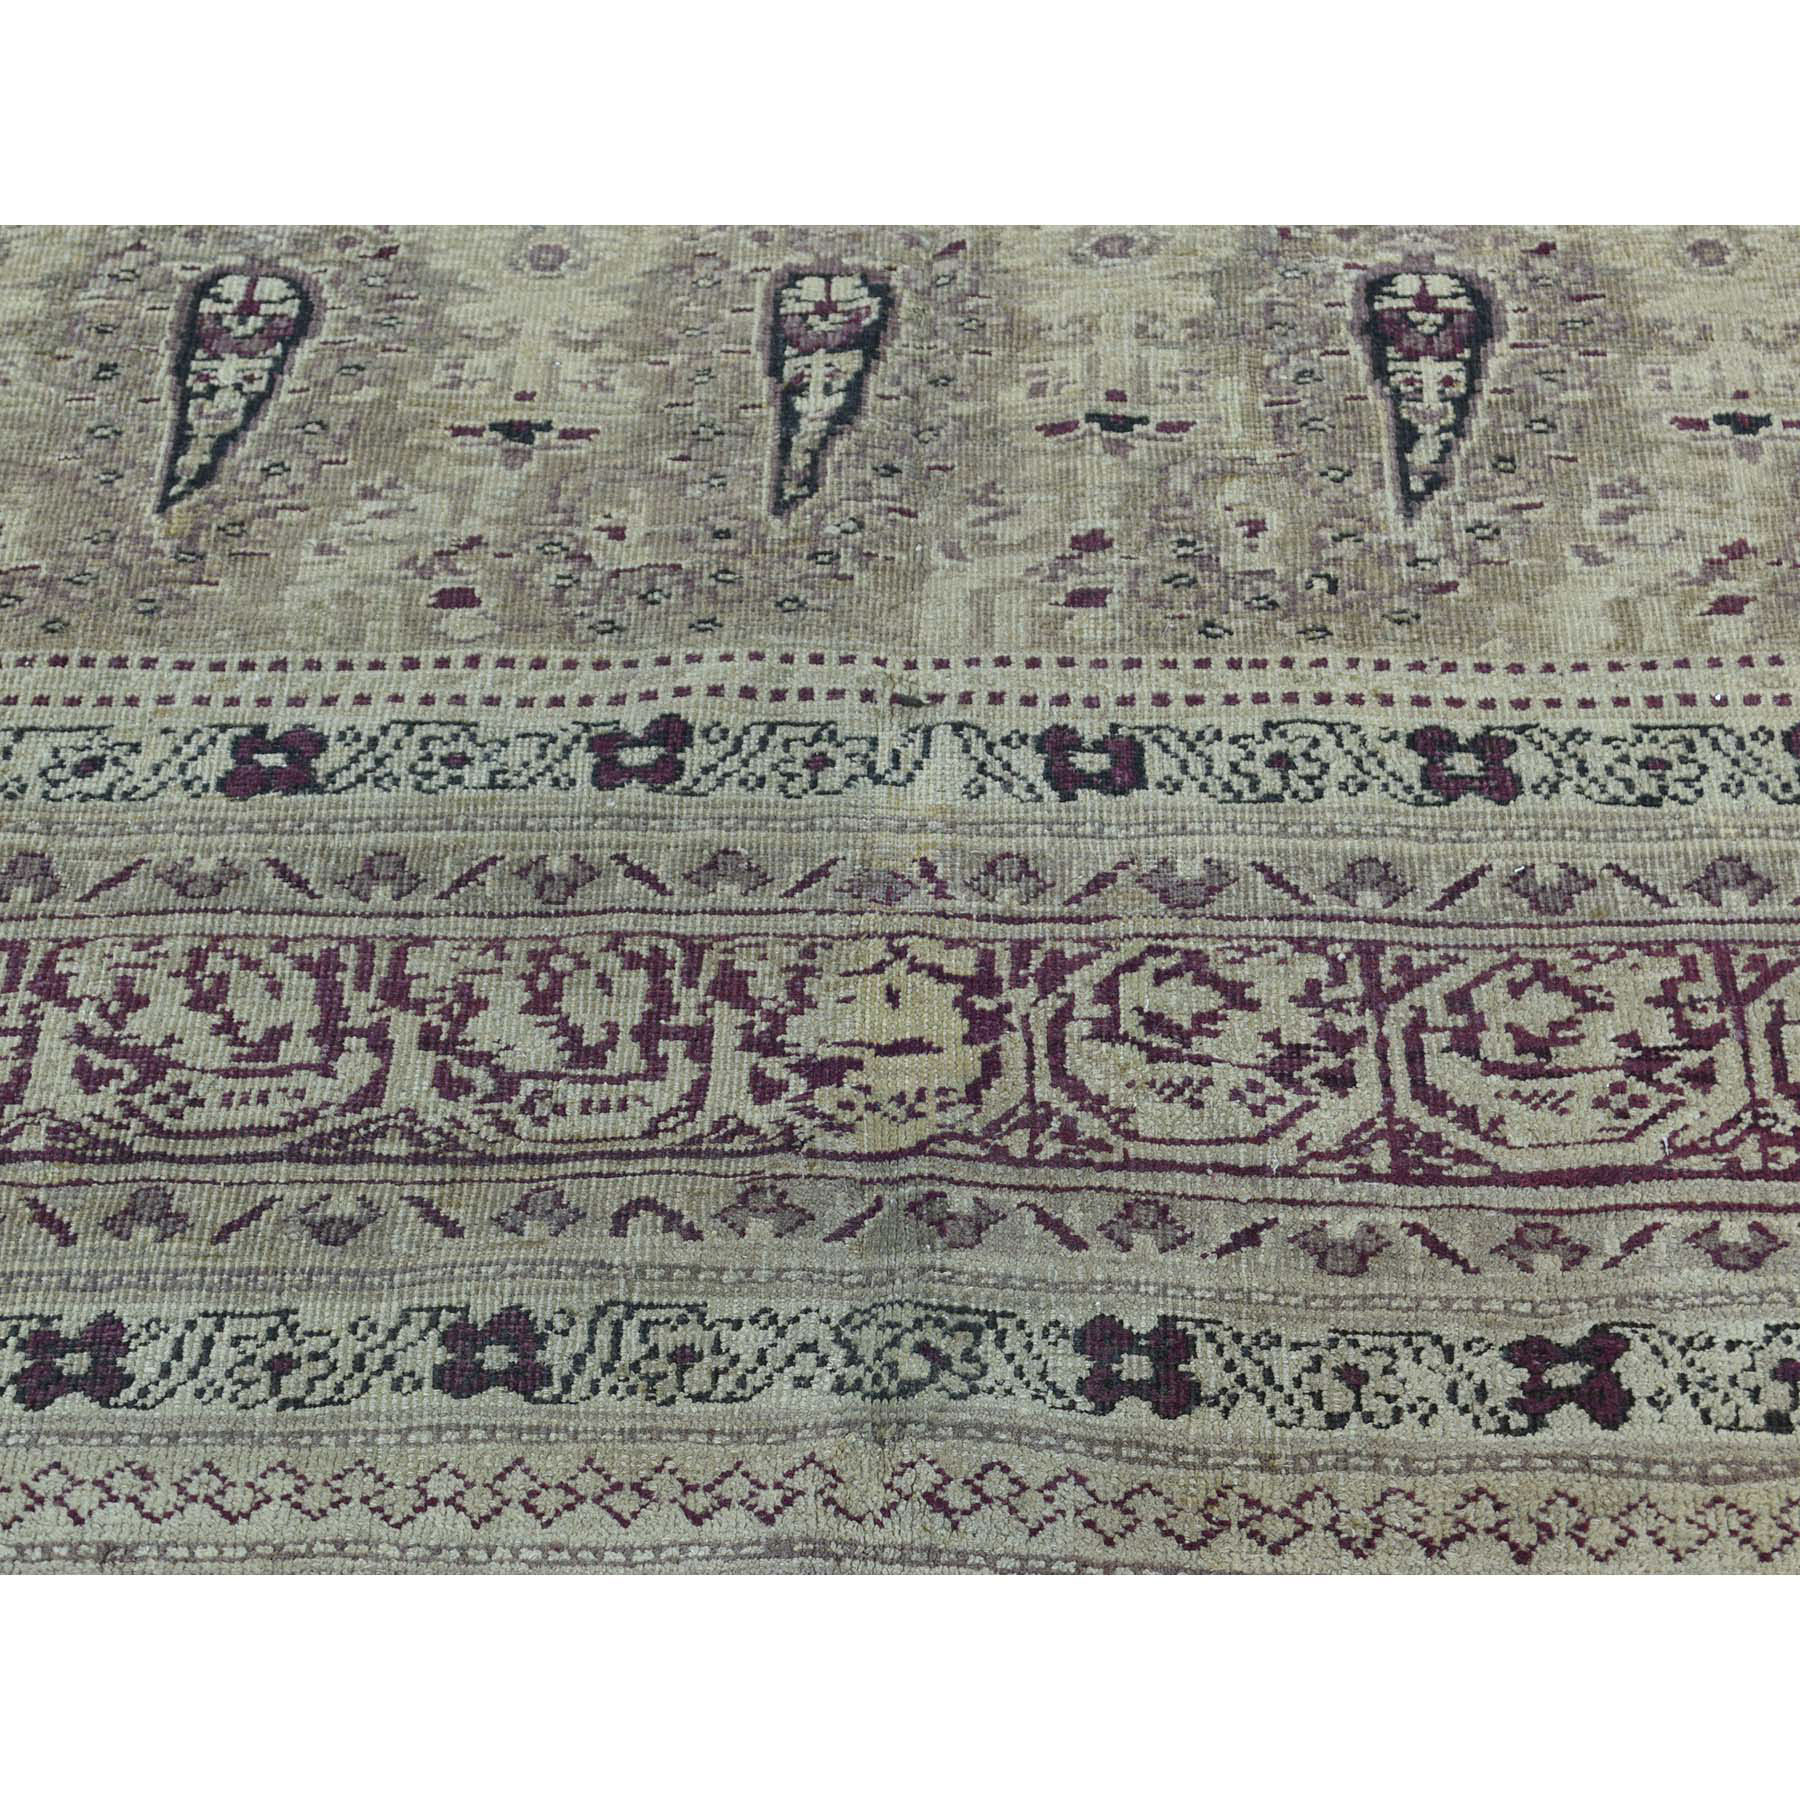 8-x10-8  Antique Mughal Agra Paisley Design Excellent Condition Rug